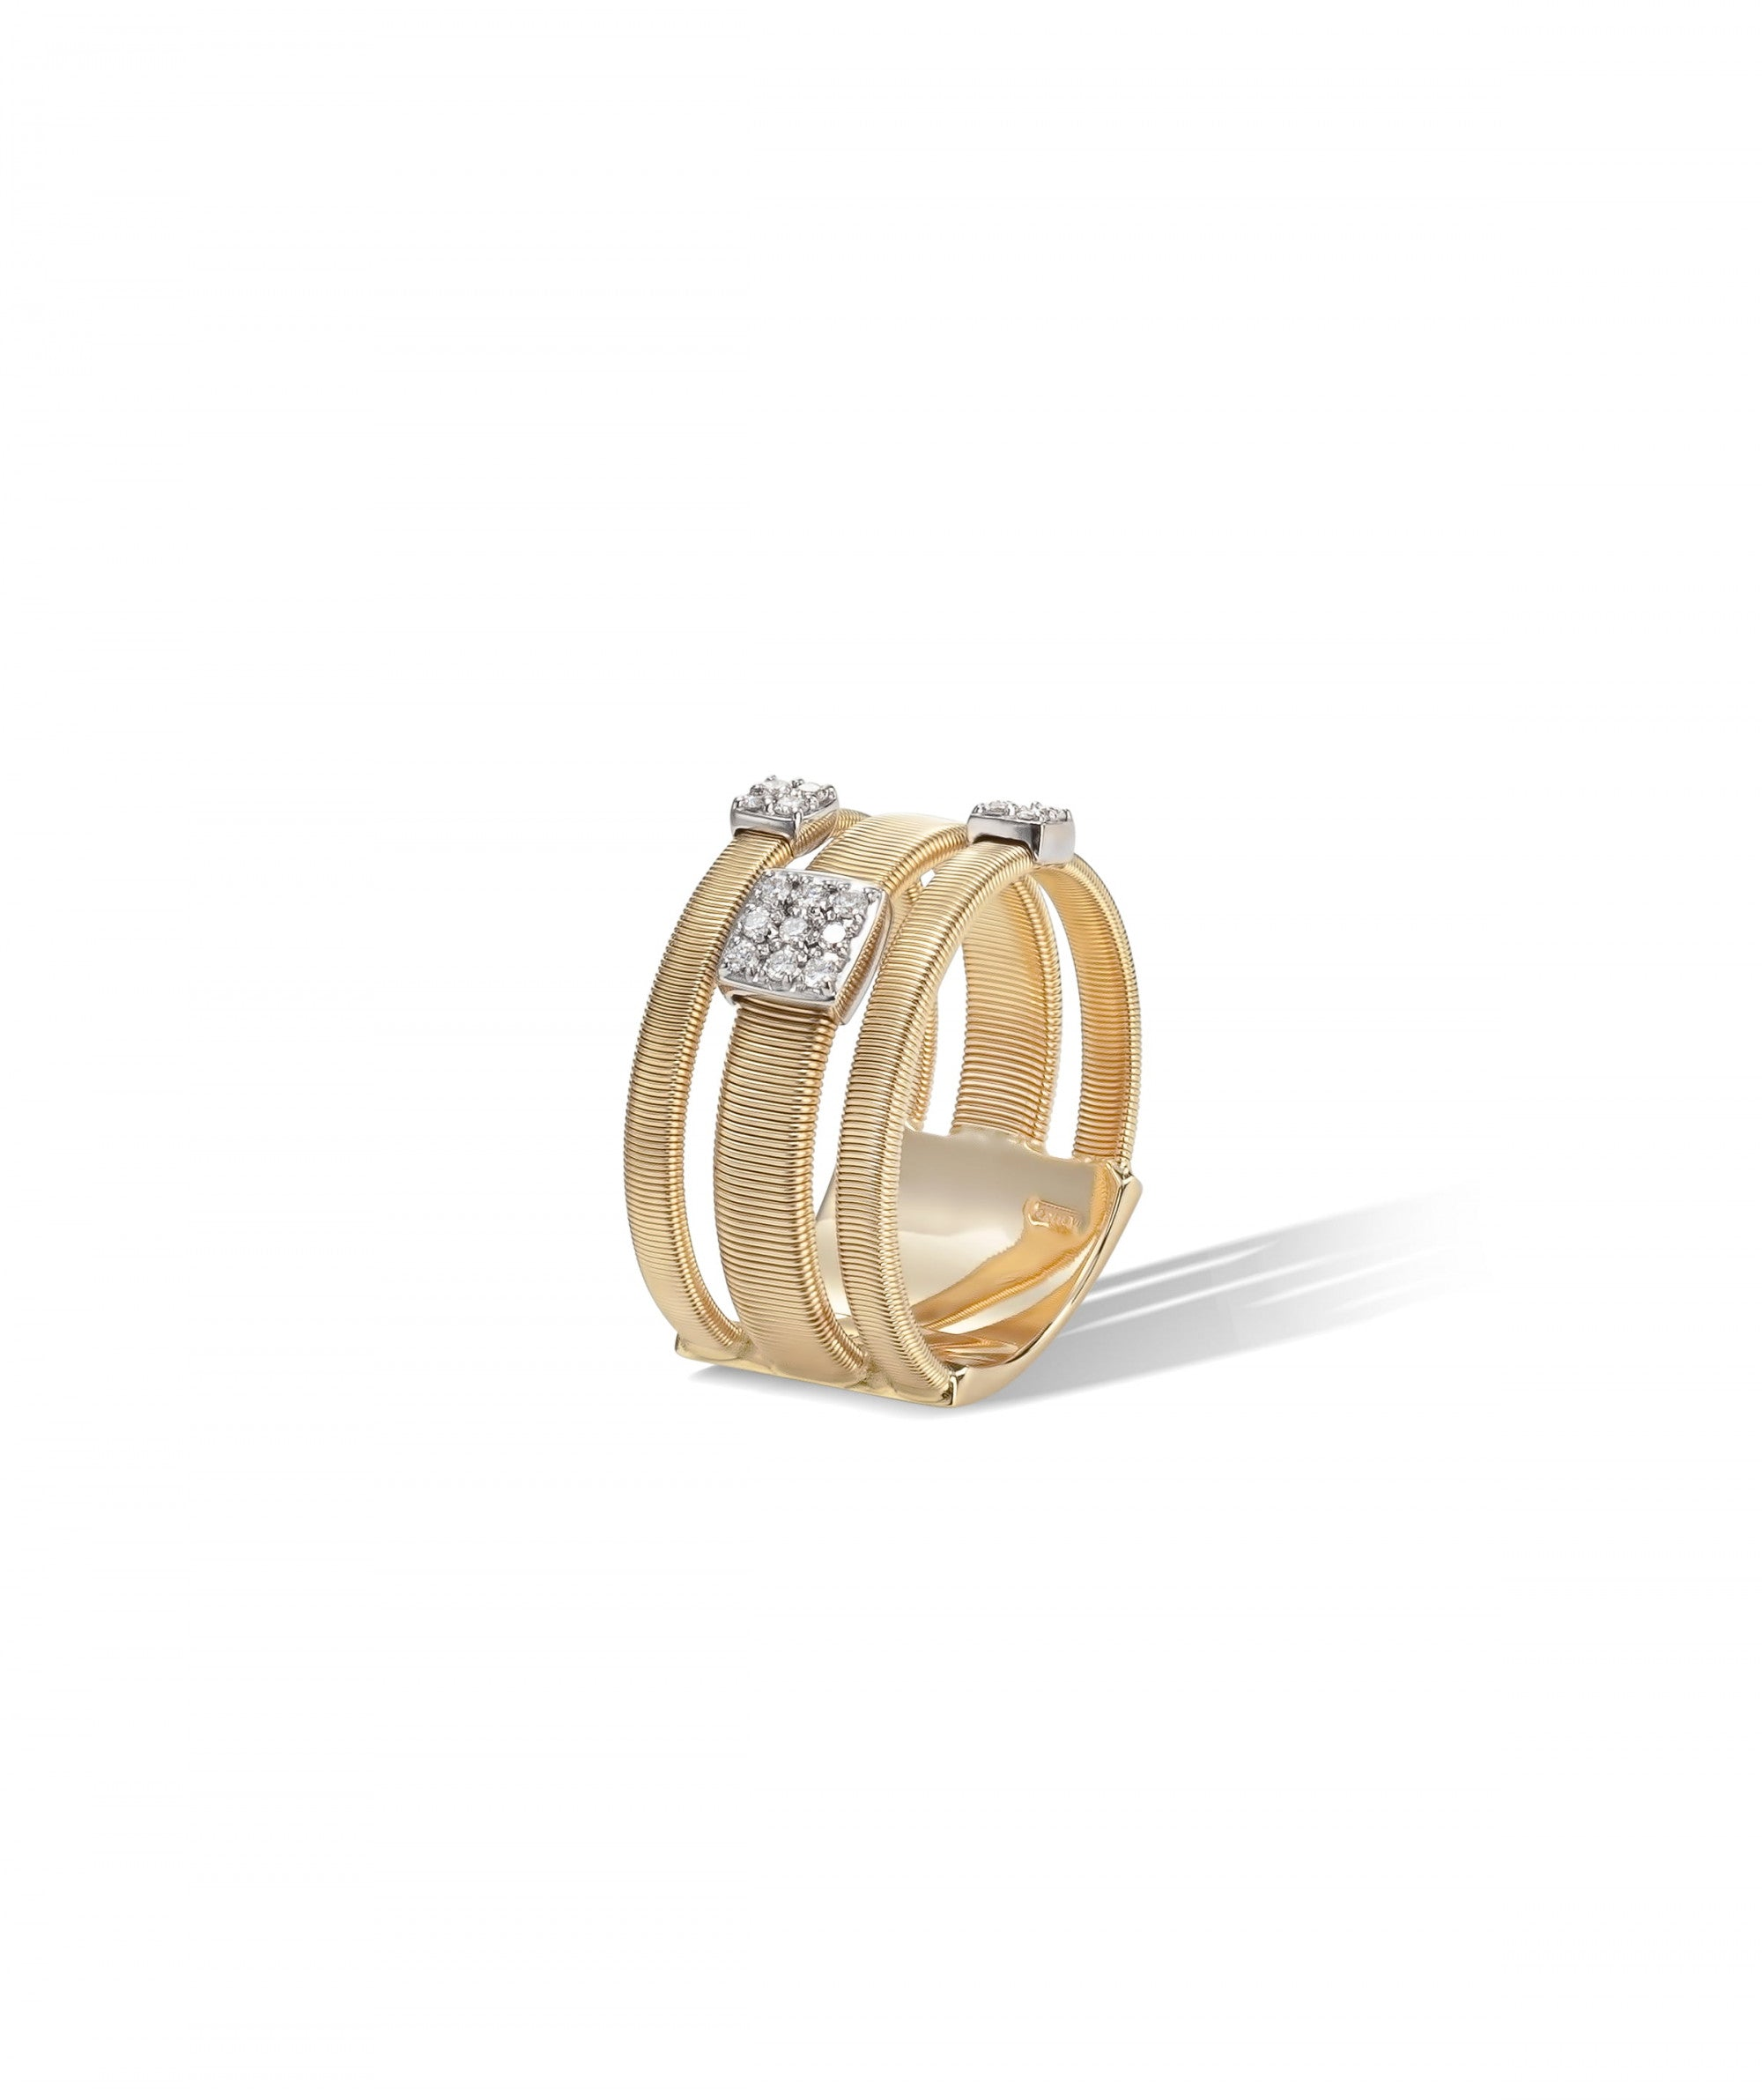 Masai Ring in 18k Yellow Gold with Pave Diamonds Triple Band - Orsini Jewellers NZ